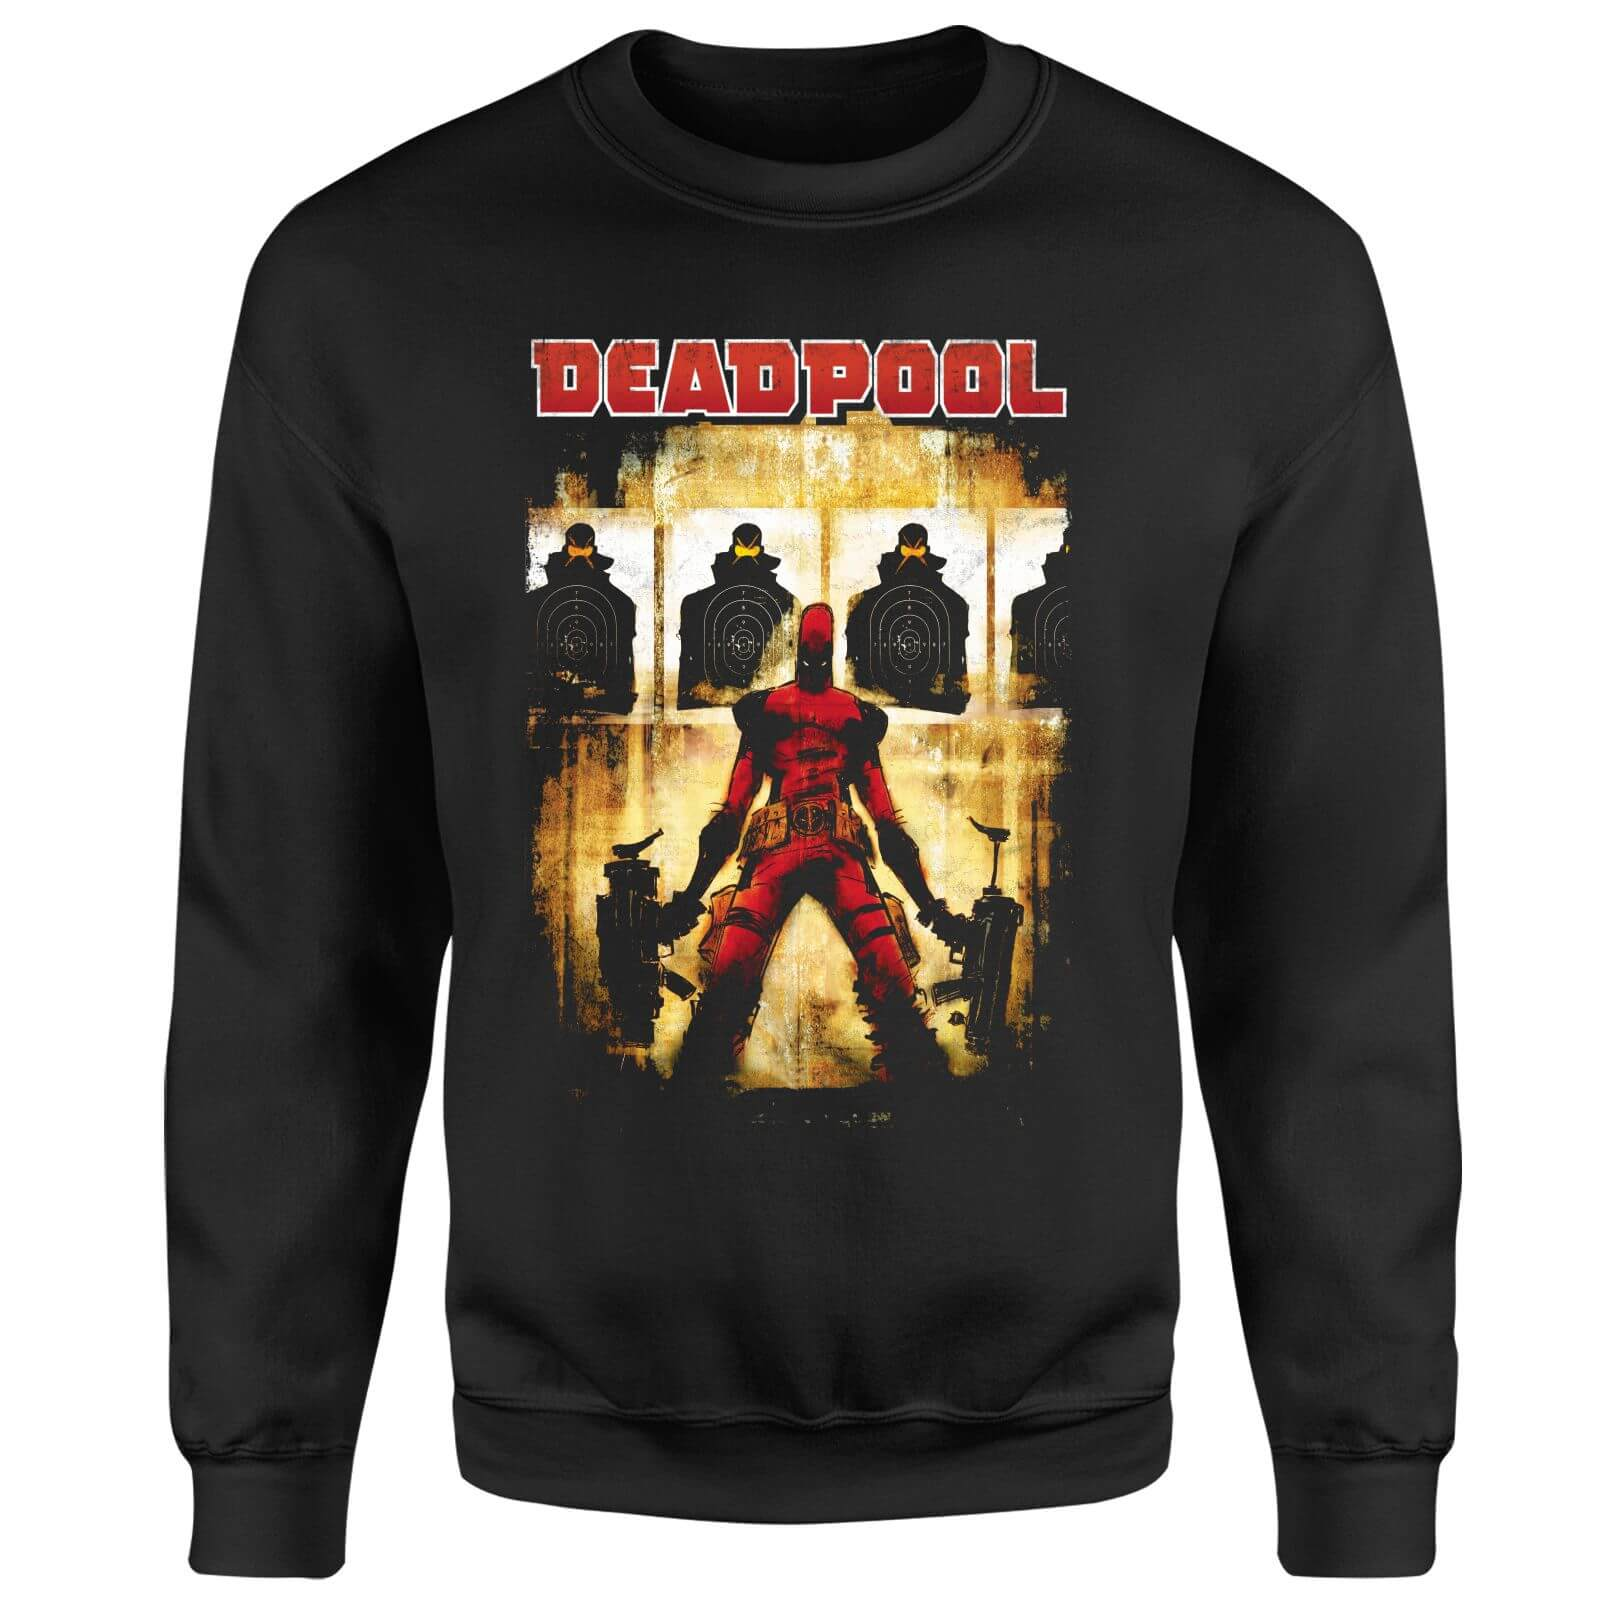 Marvel Deadpool Target Practice Sweatshirt - Black